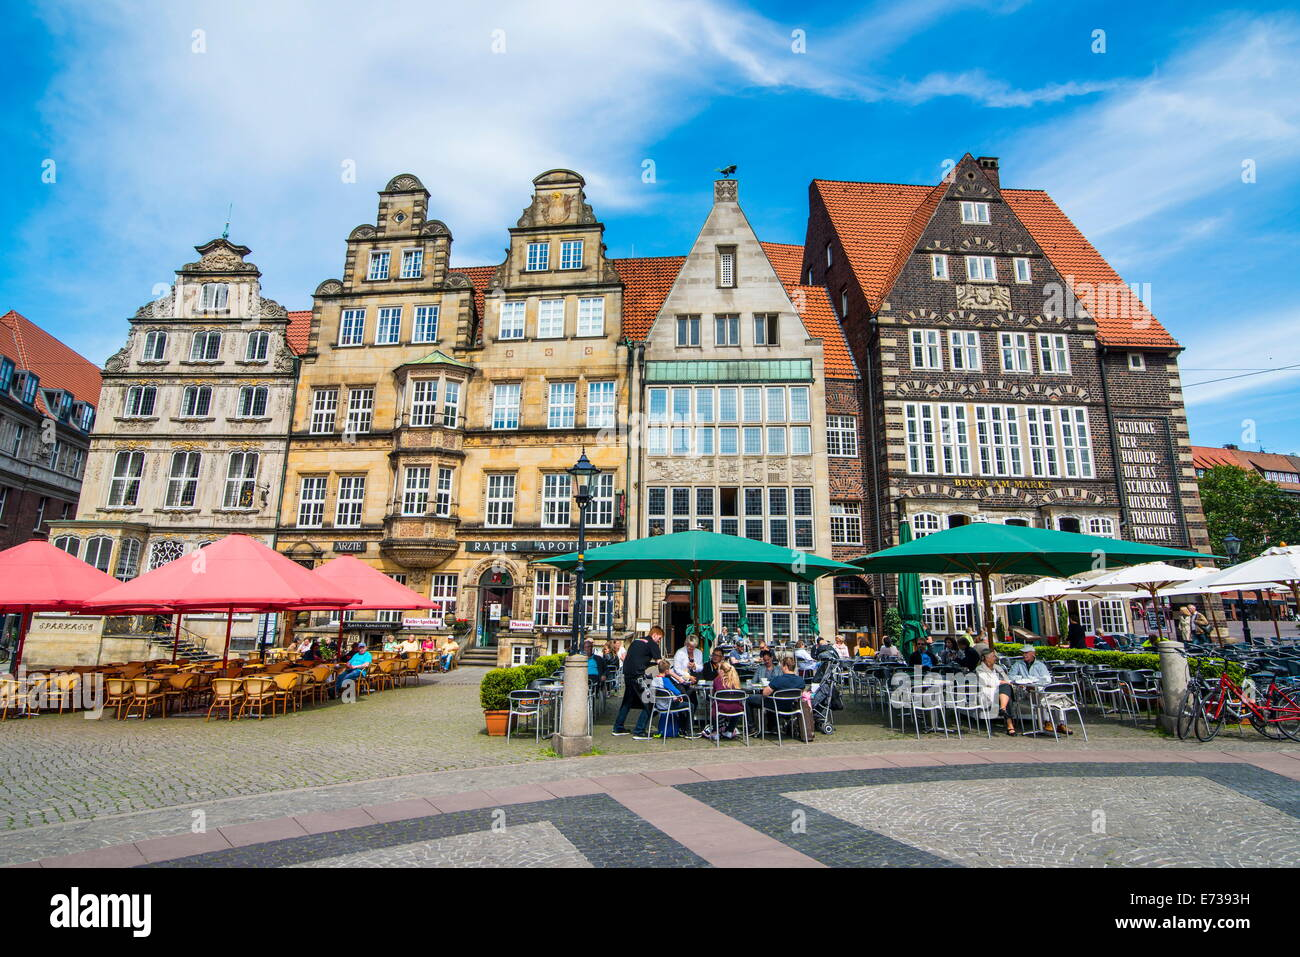 Old Hanse houses in Market square of Bremen, Germany, Europe - Stock Image